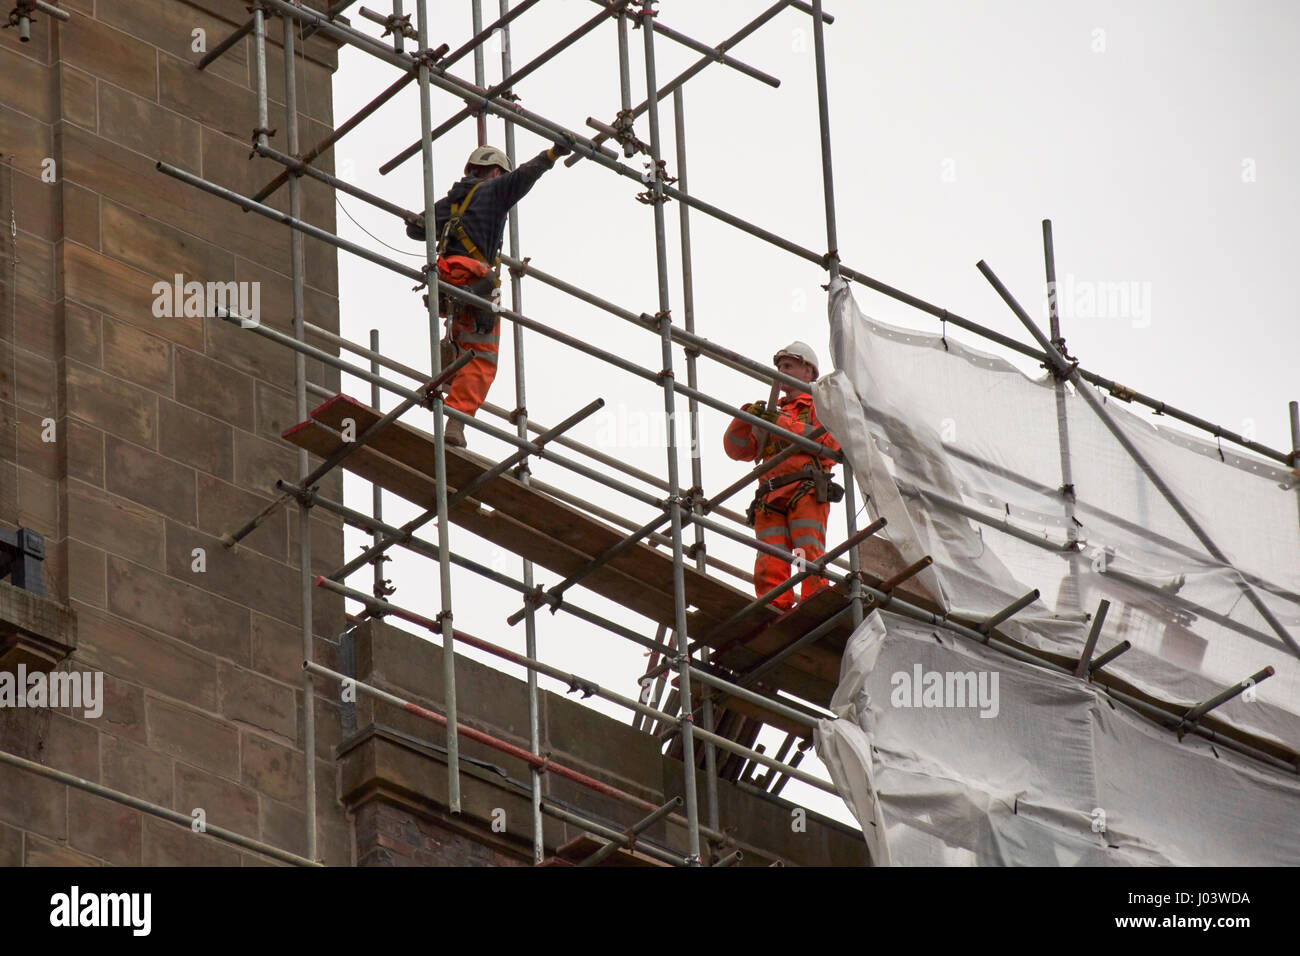 workmen with safety gear and harnesses on a high scaffold building Liverpool UK - Stock Image